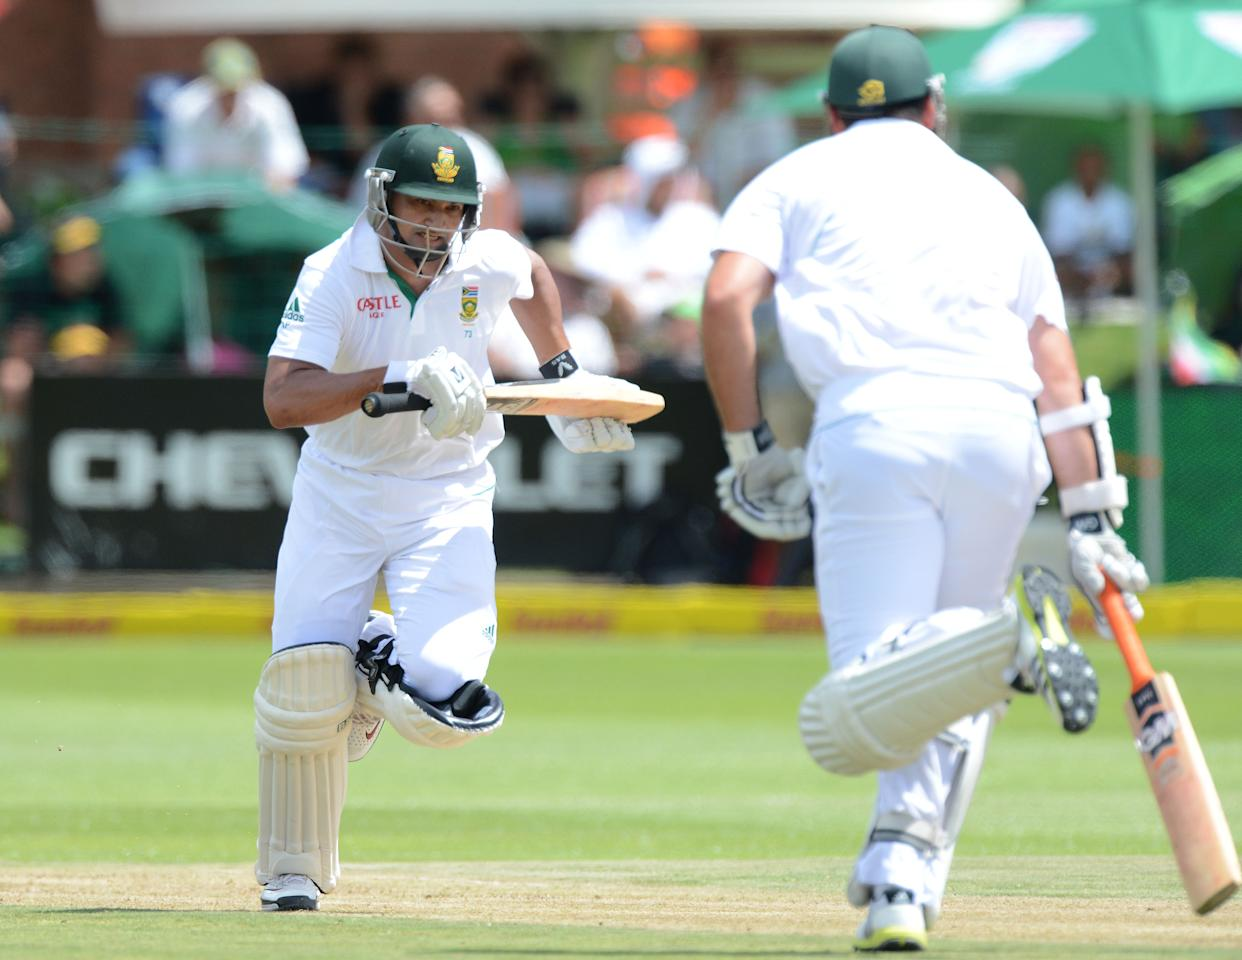 PORT ELIZABETH, SOUTH AFRICA - JANUARY 11:  Alviro Petersen of South Africa runs a quick single during day one of the second test match between South Africa and New Zealand at Axxess St Georges on January 11, 2013 in Port Elizabeth, South Africa. (Photo by Duif du Toit/Gallo Images/Getty Images)